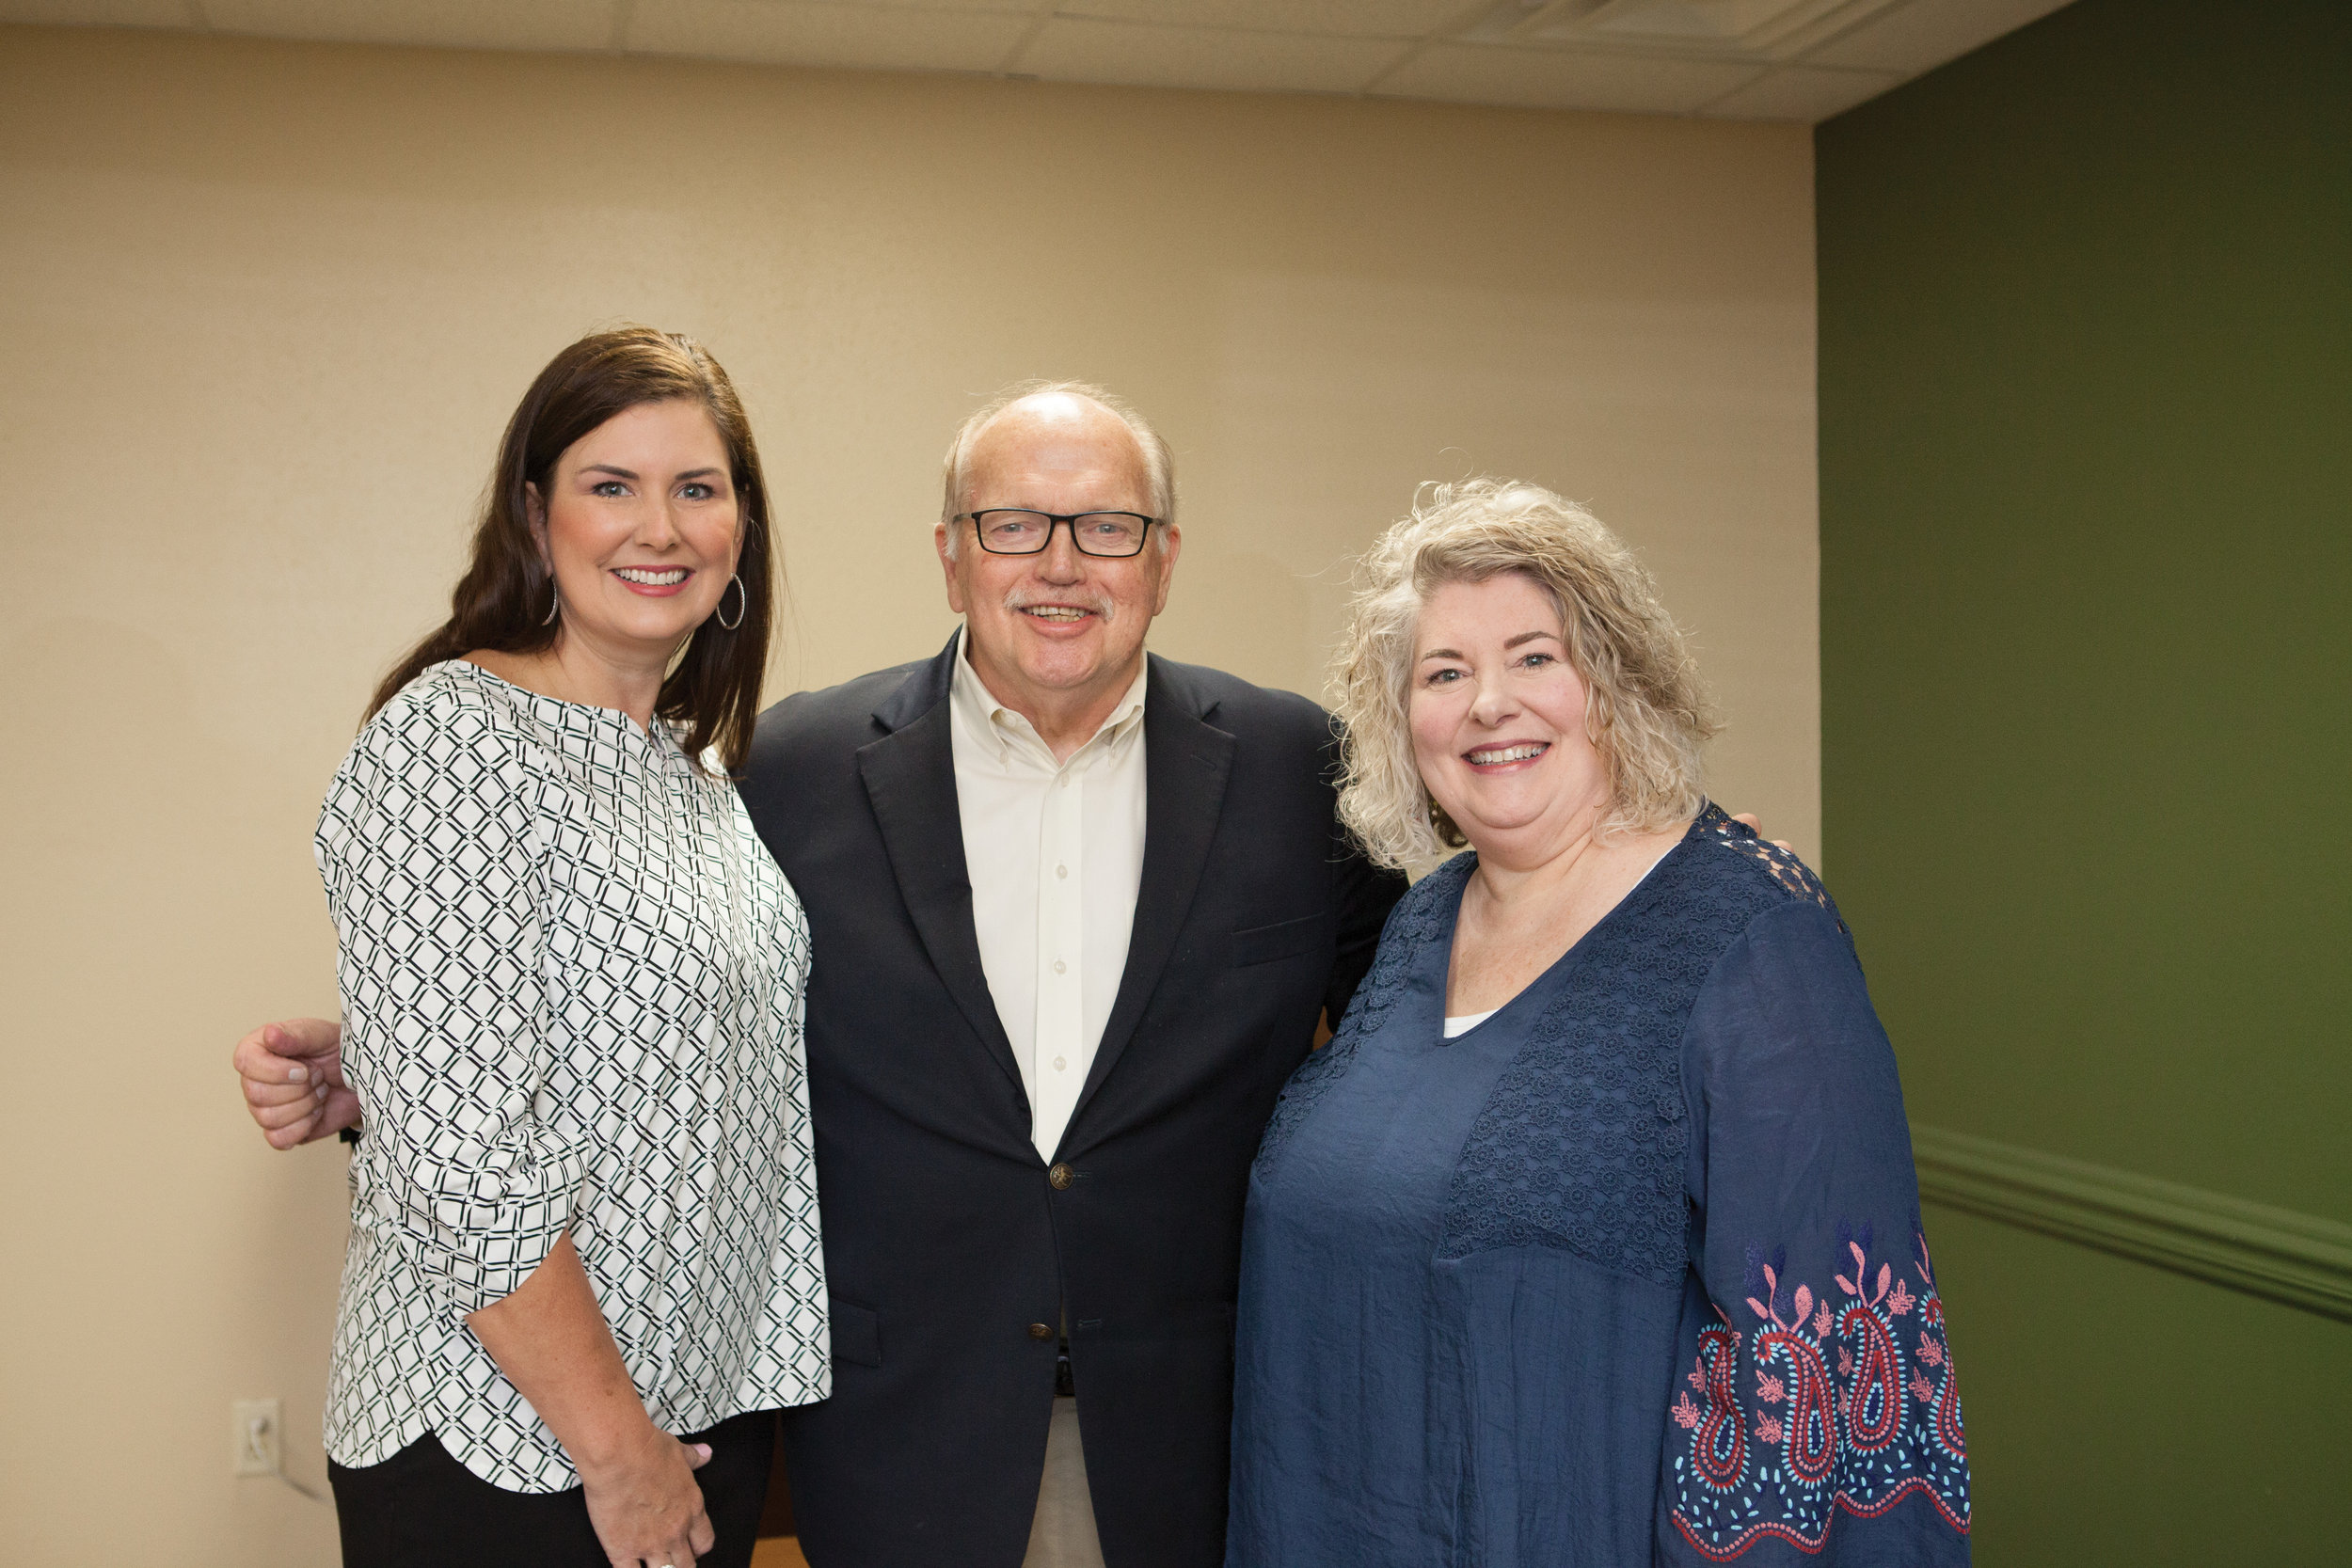 Dr. Robin Rogers, Larry Sims and Suzy Turner